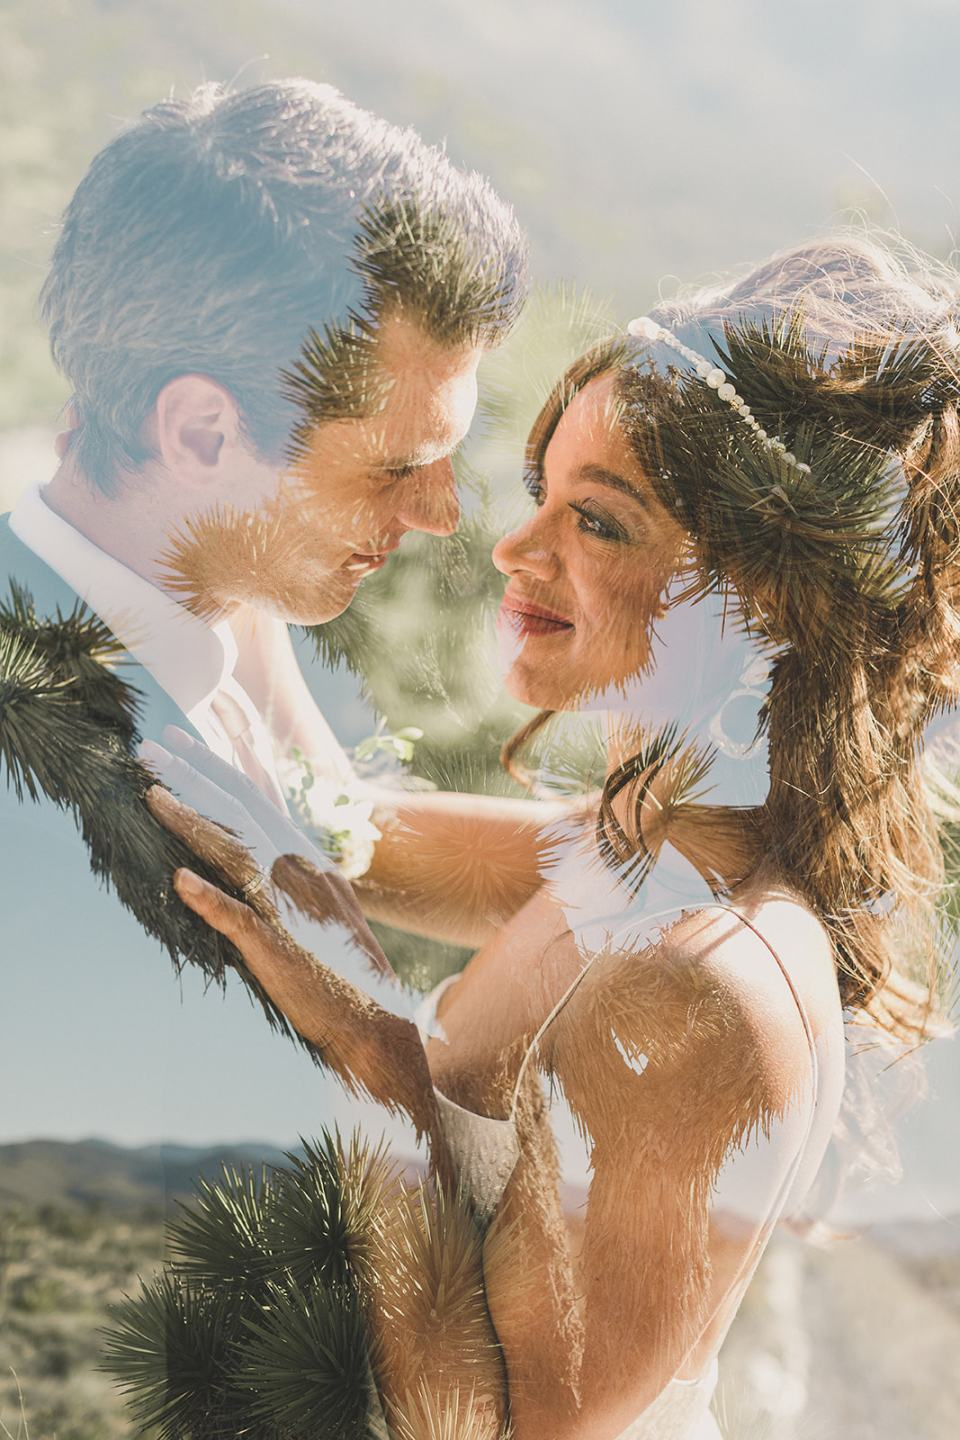 double exposure wedding portraits during Las Vegas styled shoot photographed by Taylor Made Photography